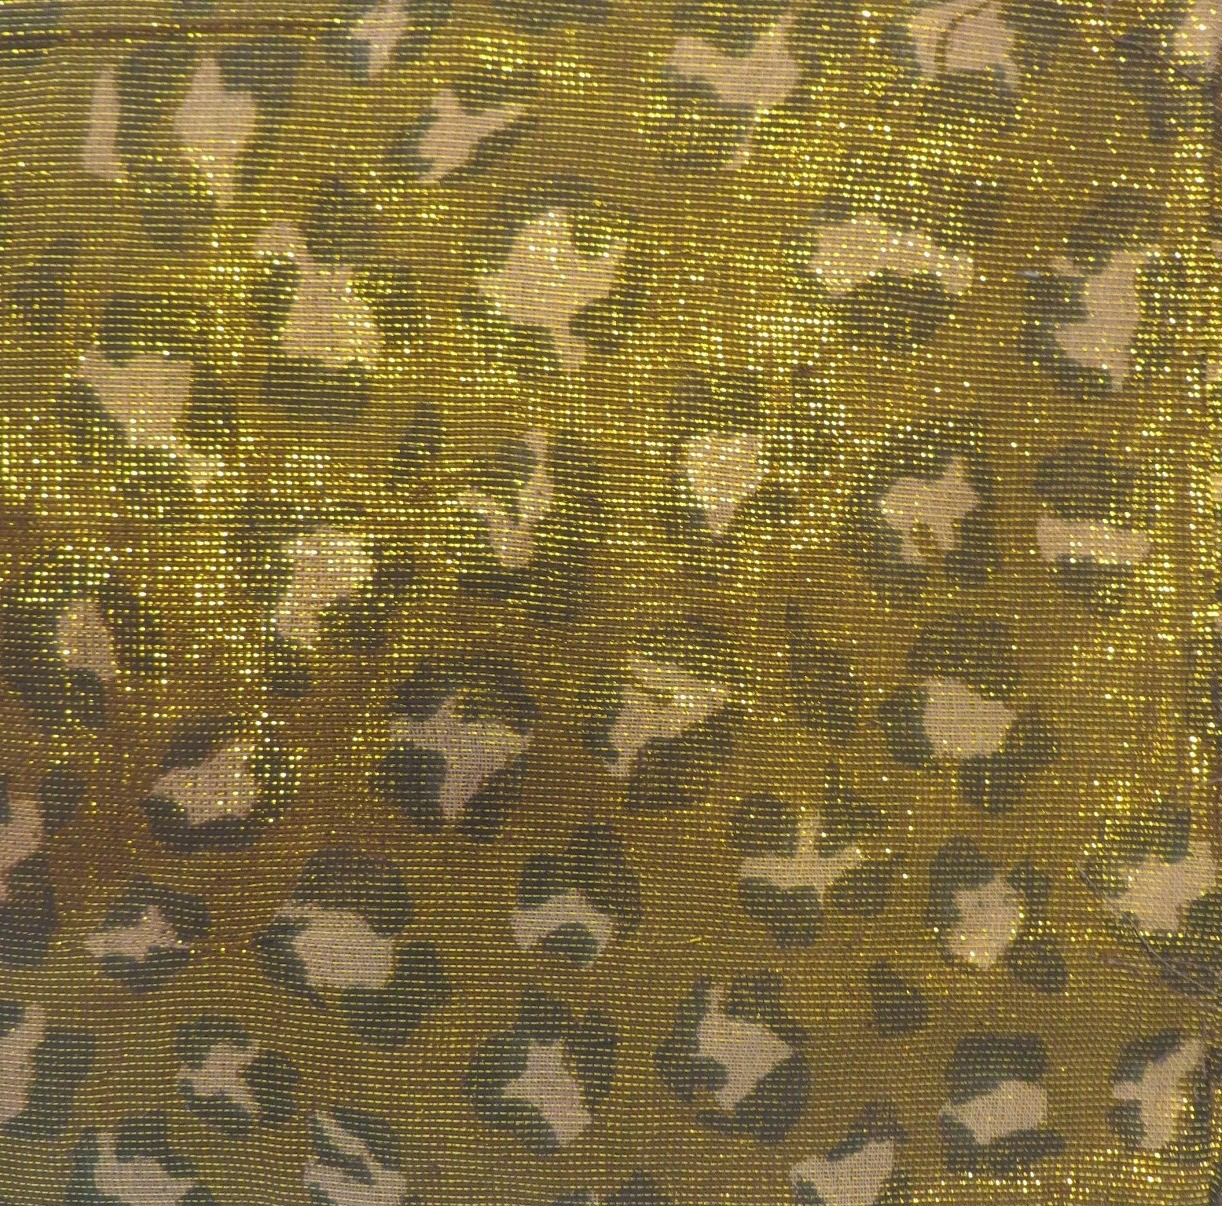 Brown and gold animal print shimmering tichel